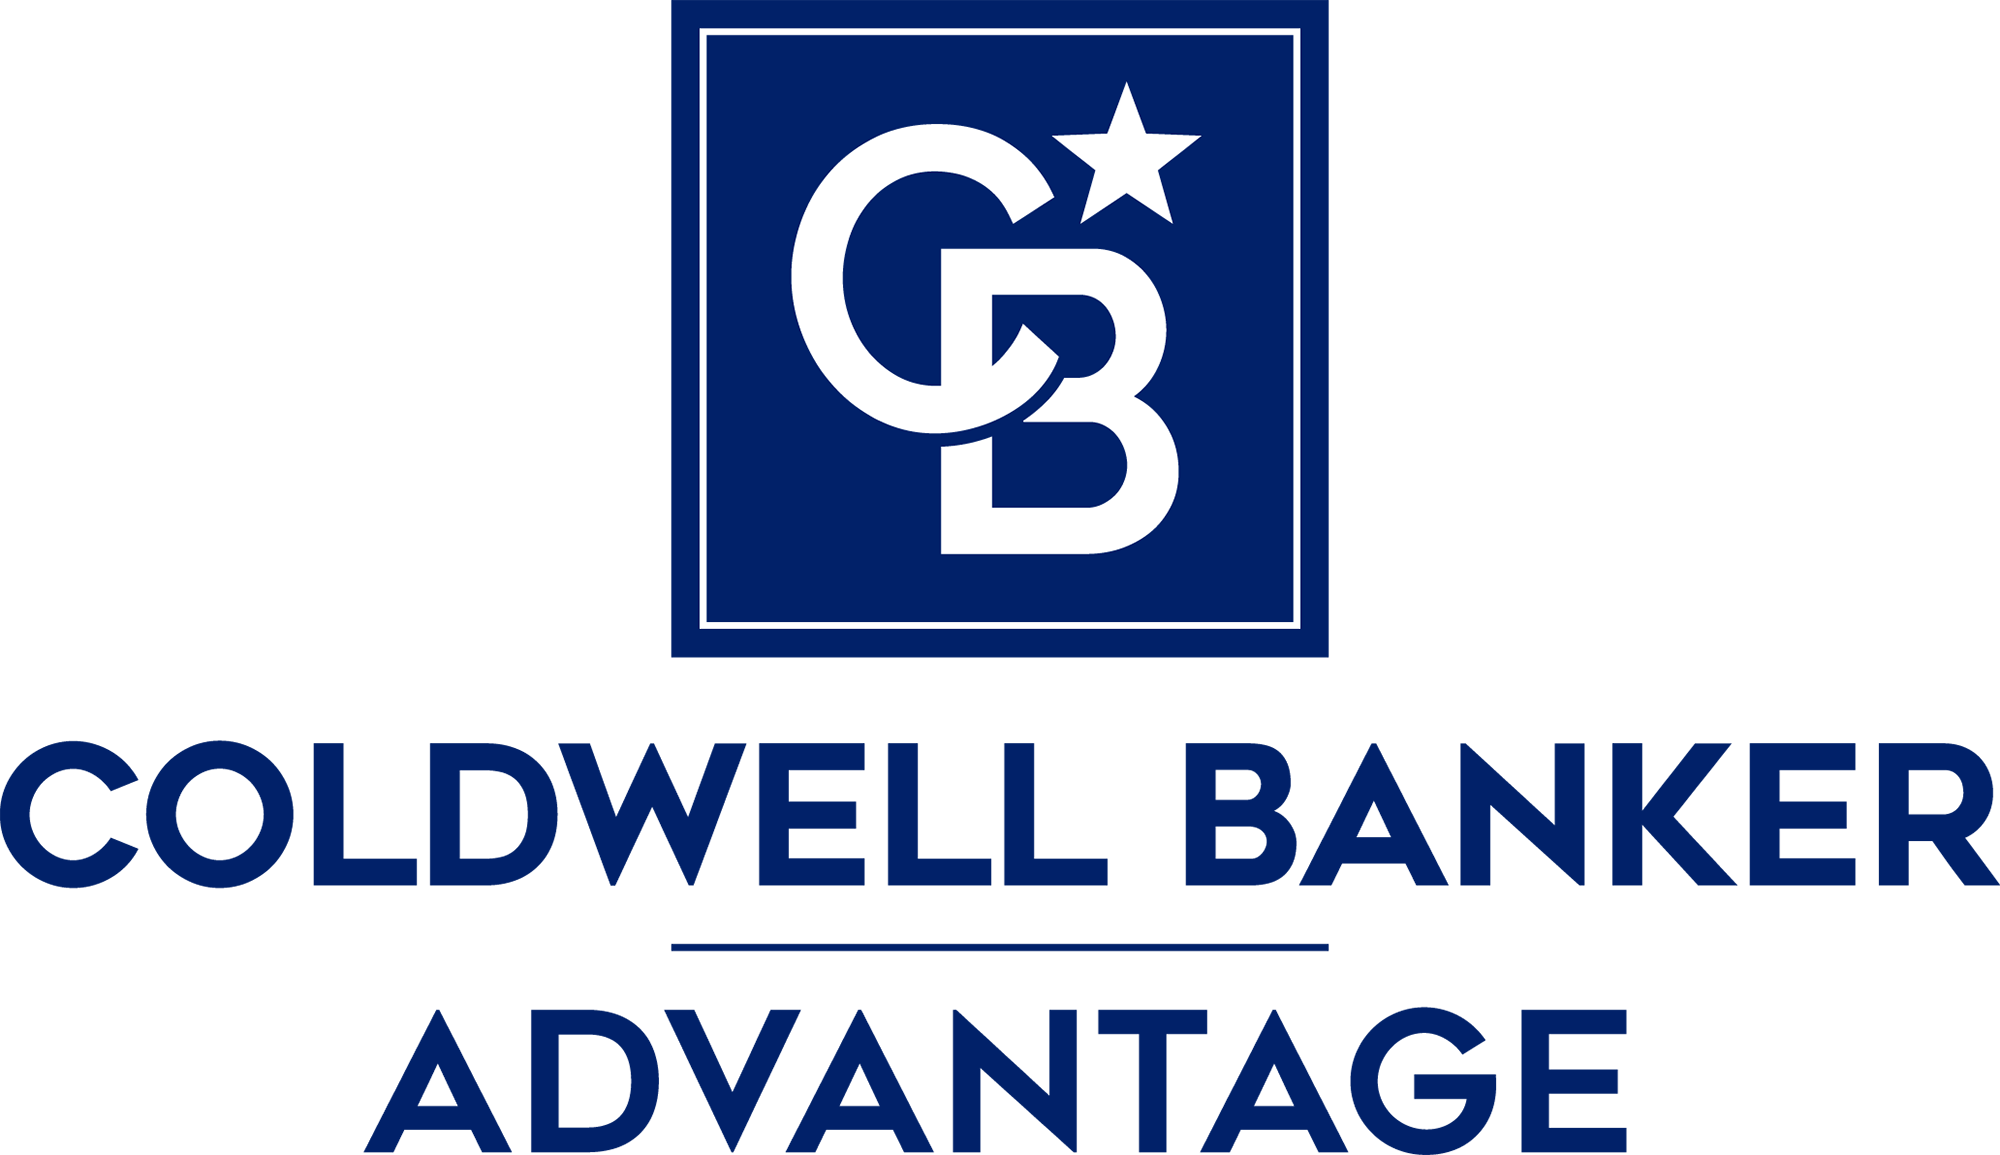 Chuck Smith - Coldwell Banker Advantage Logo